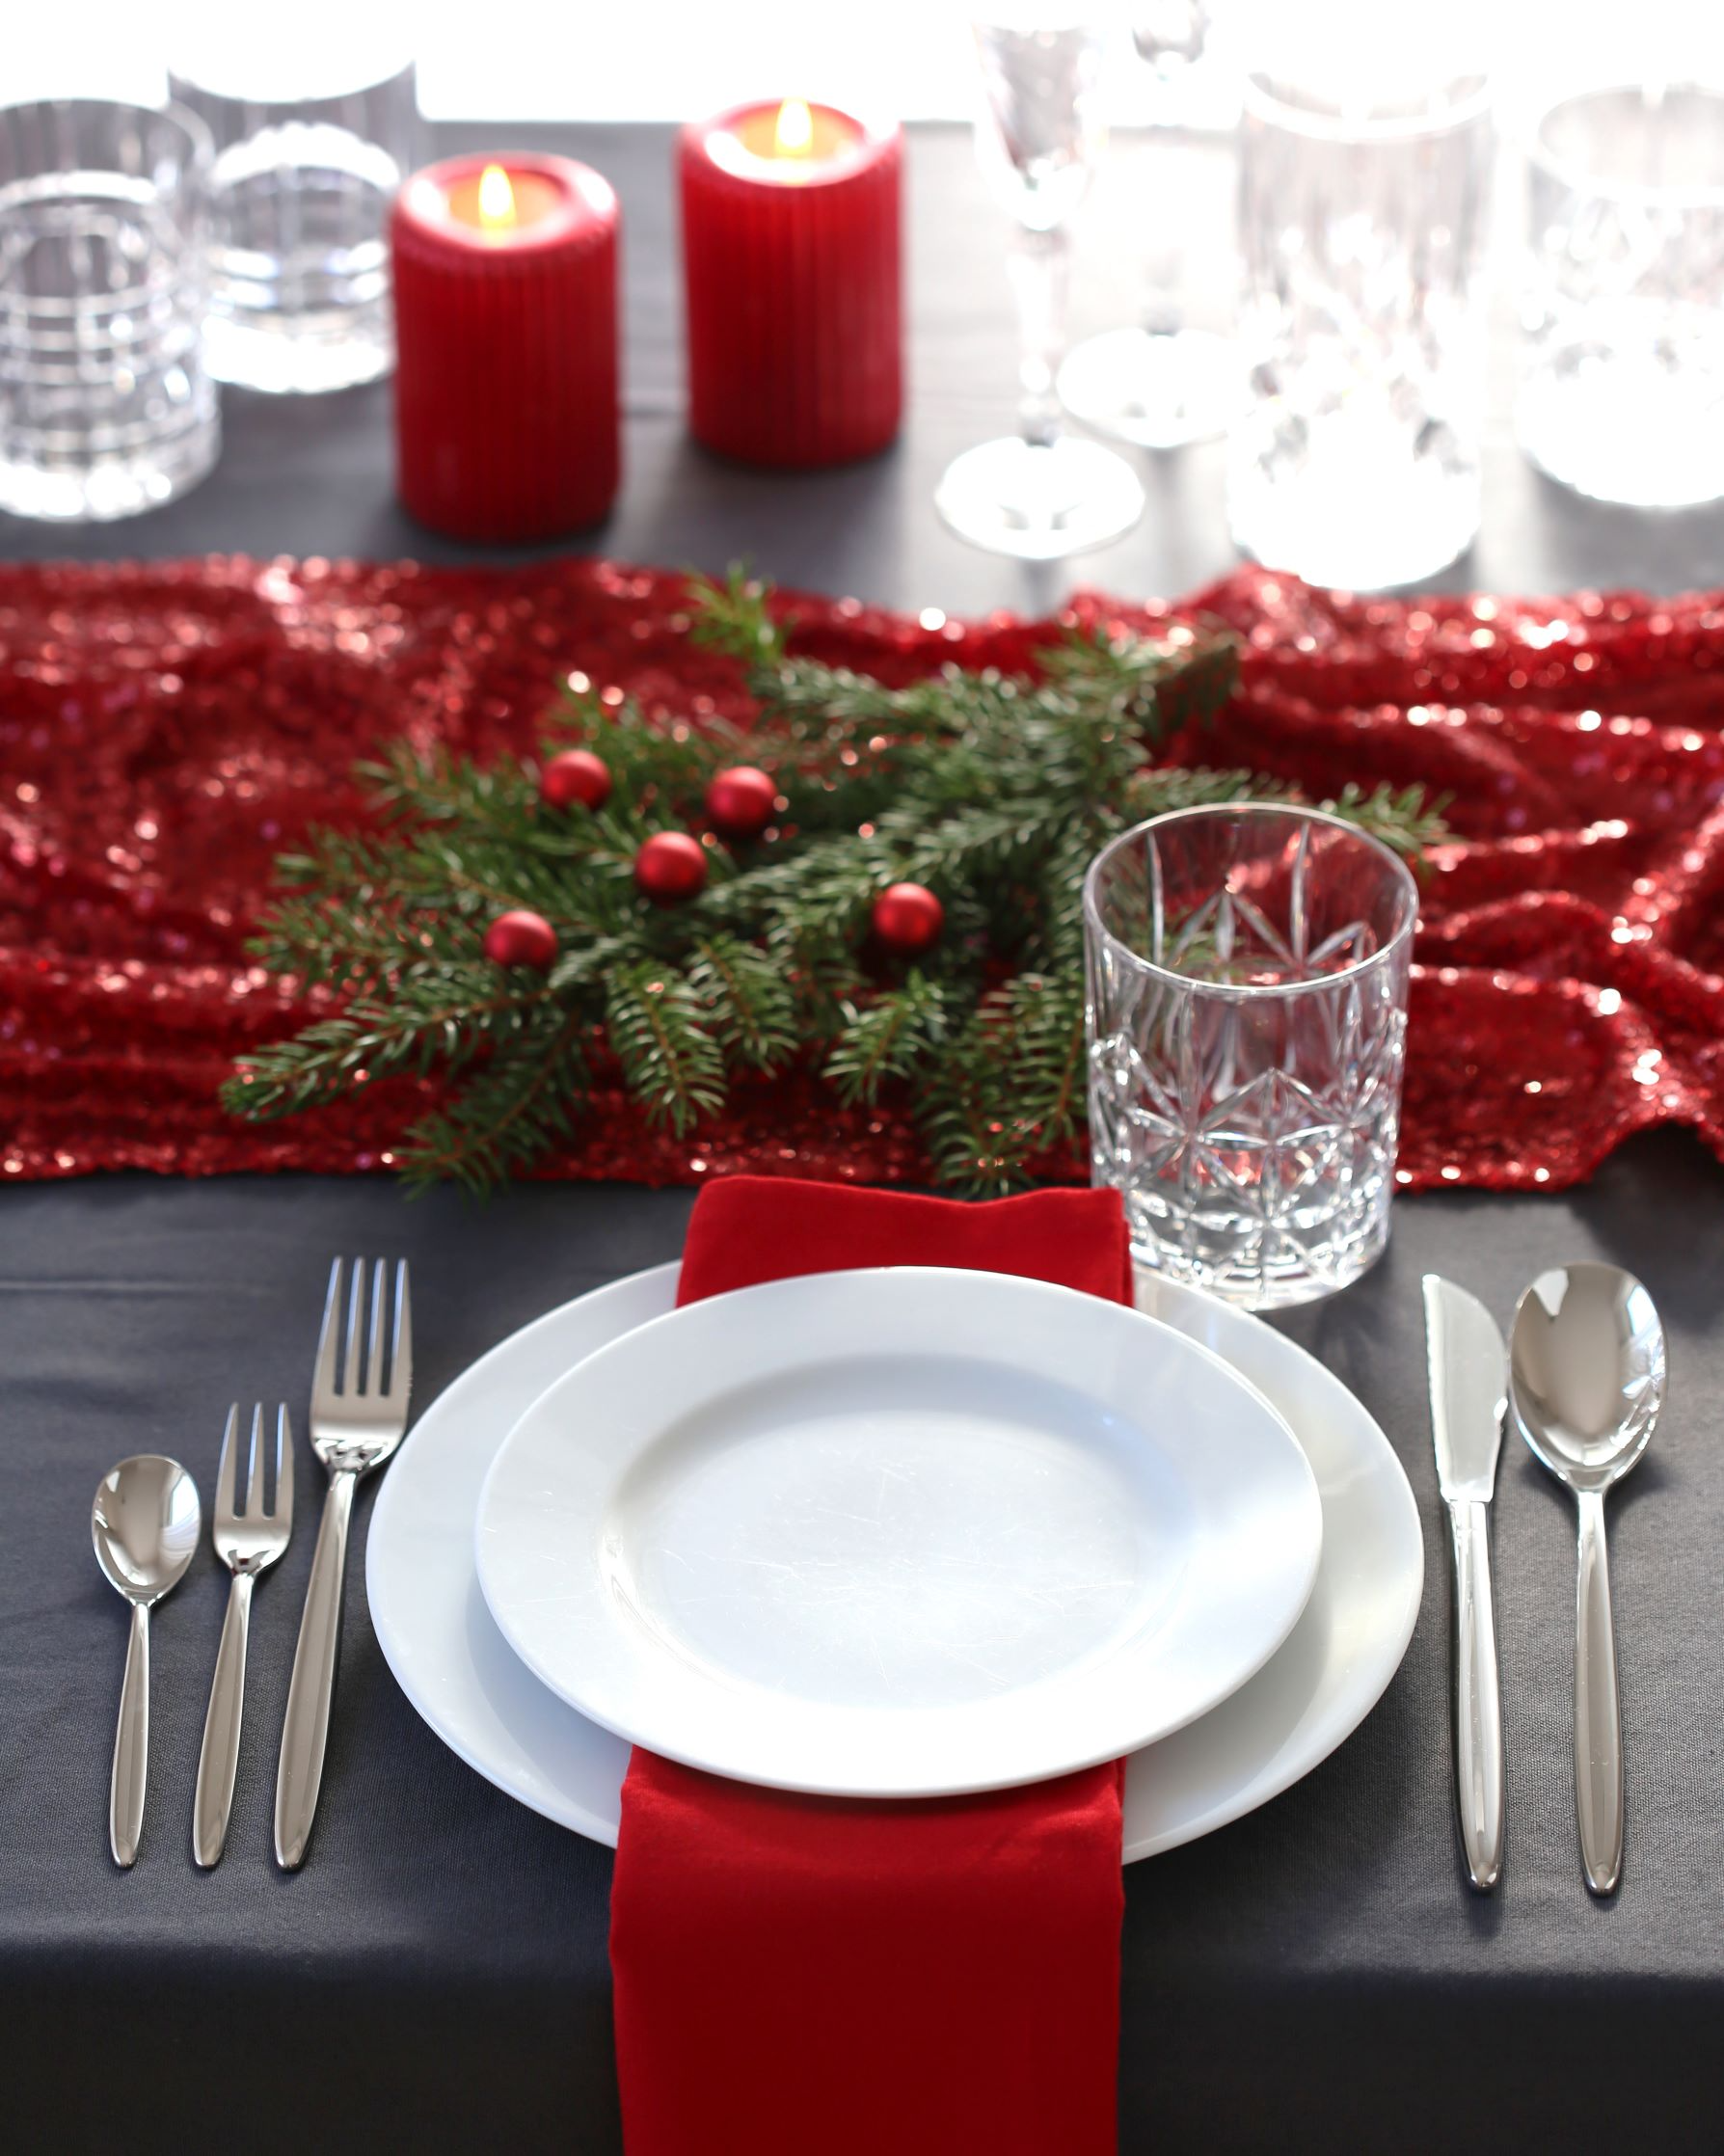 Christmas table featuring red table napkin on a white plate.